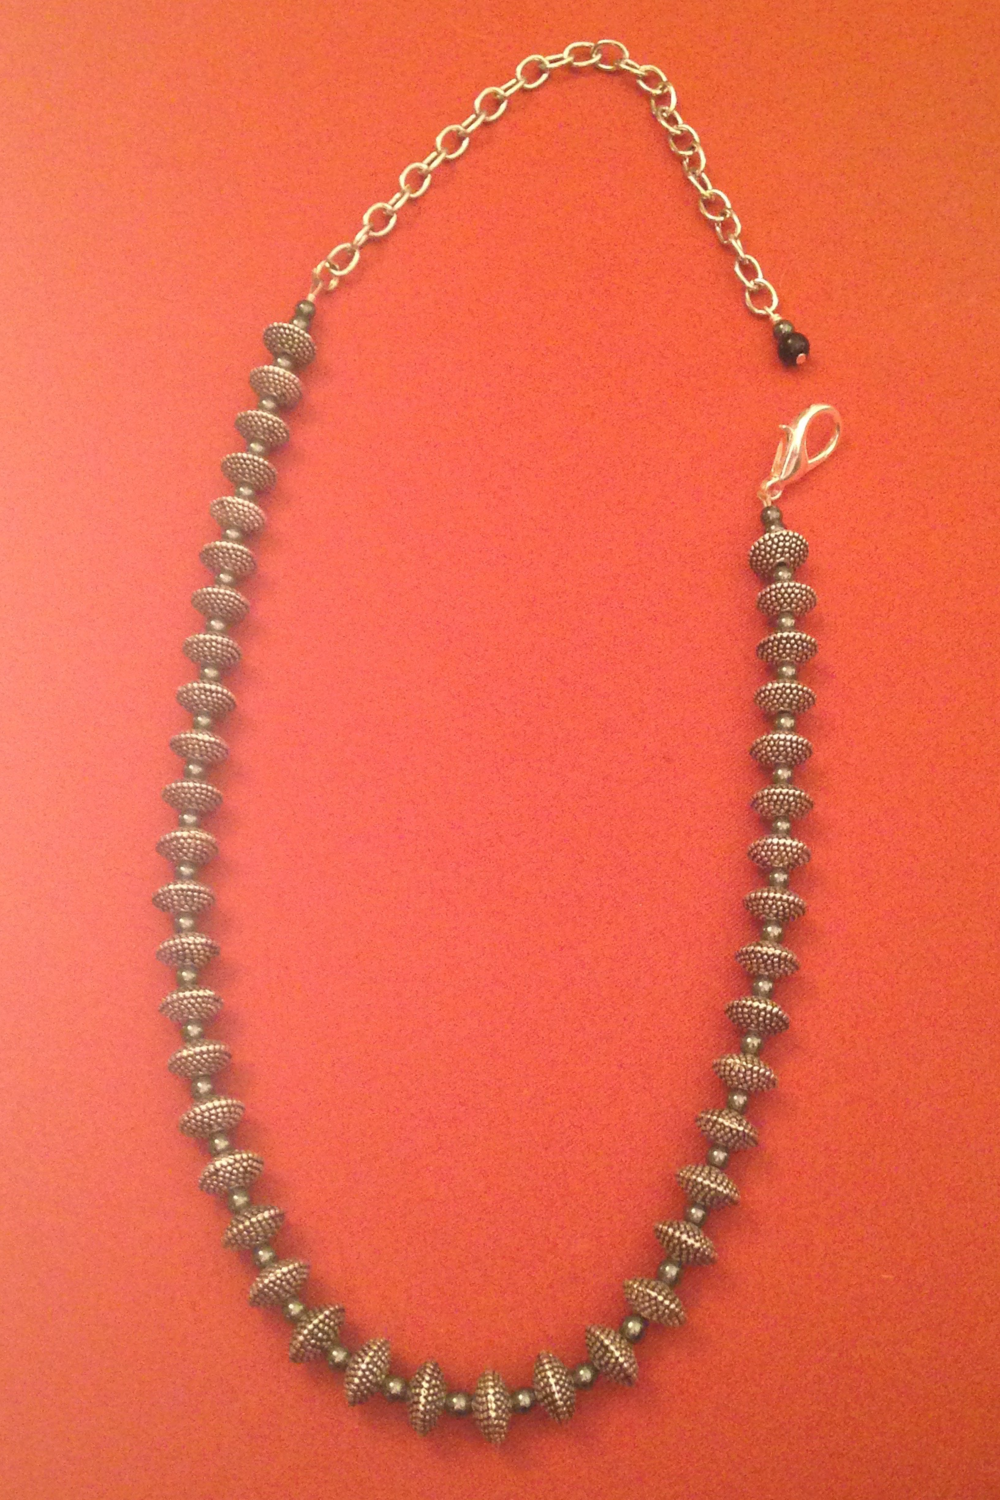 STEEL PEBBLE TEXTURE NECKLACE $120